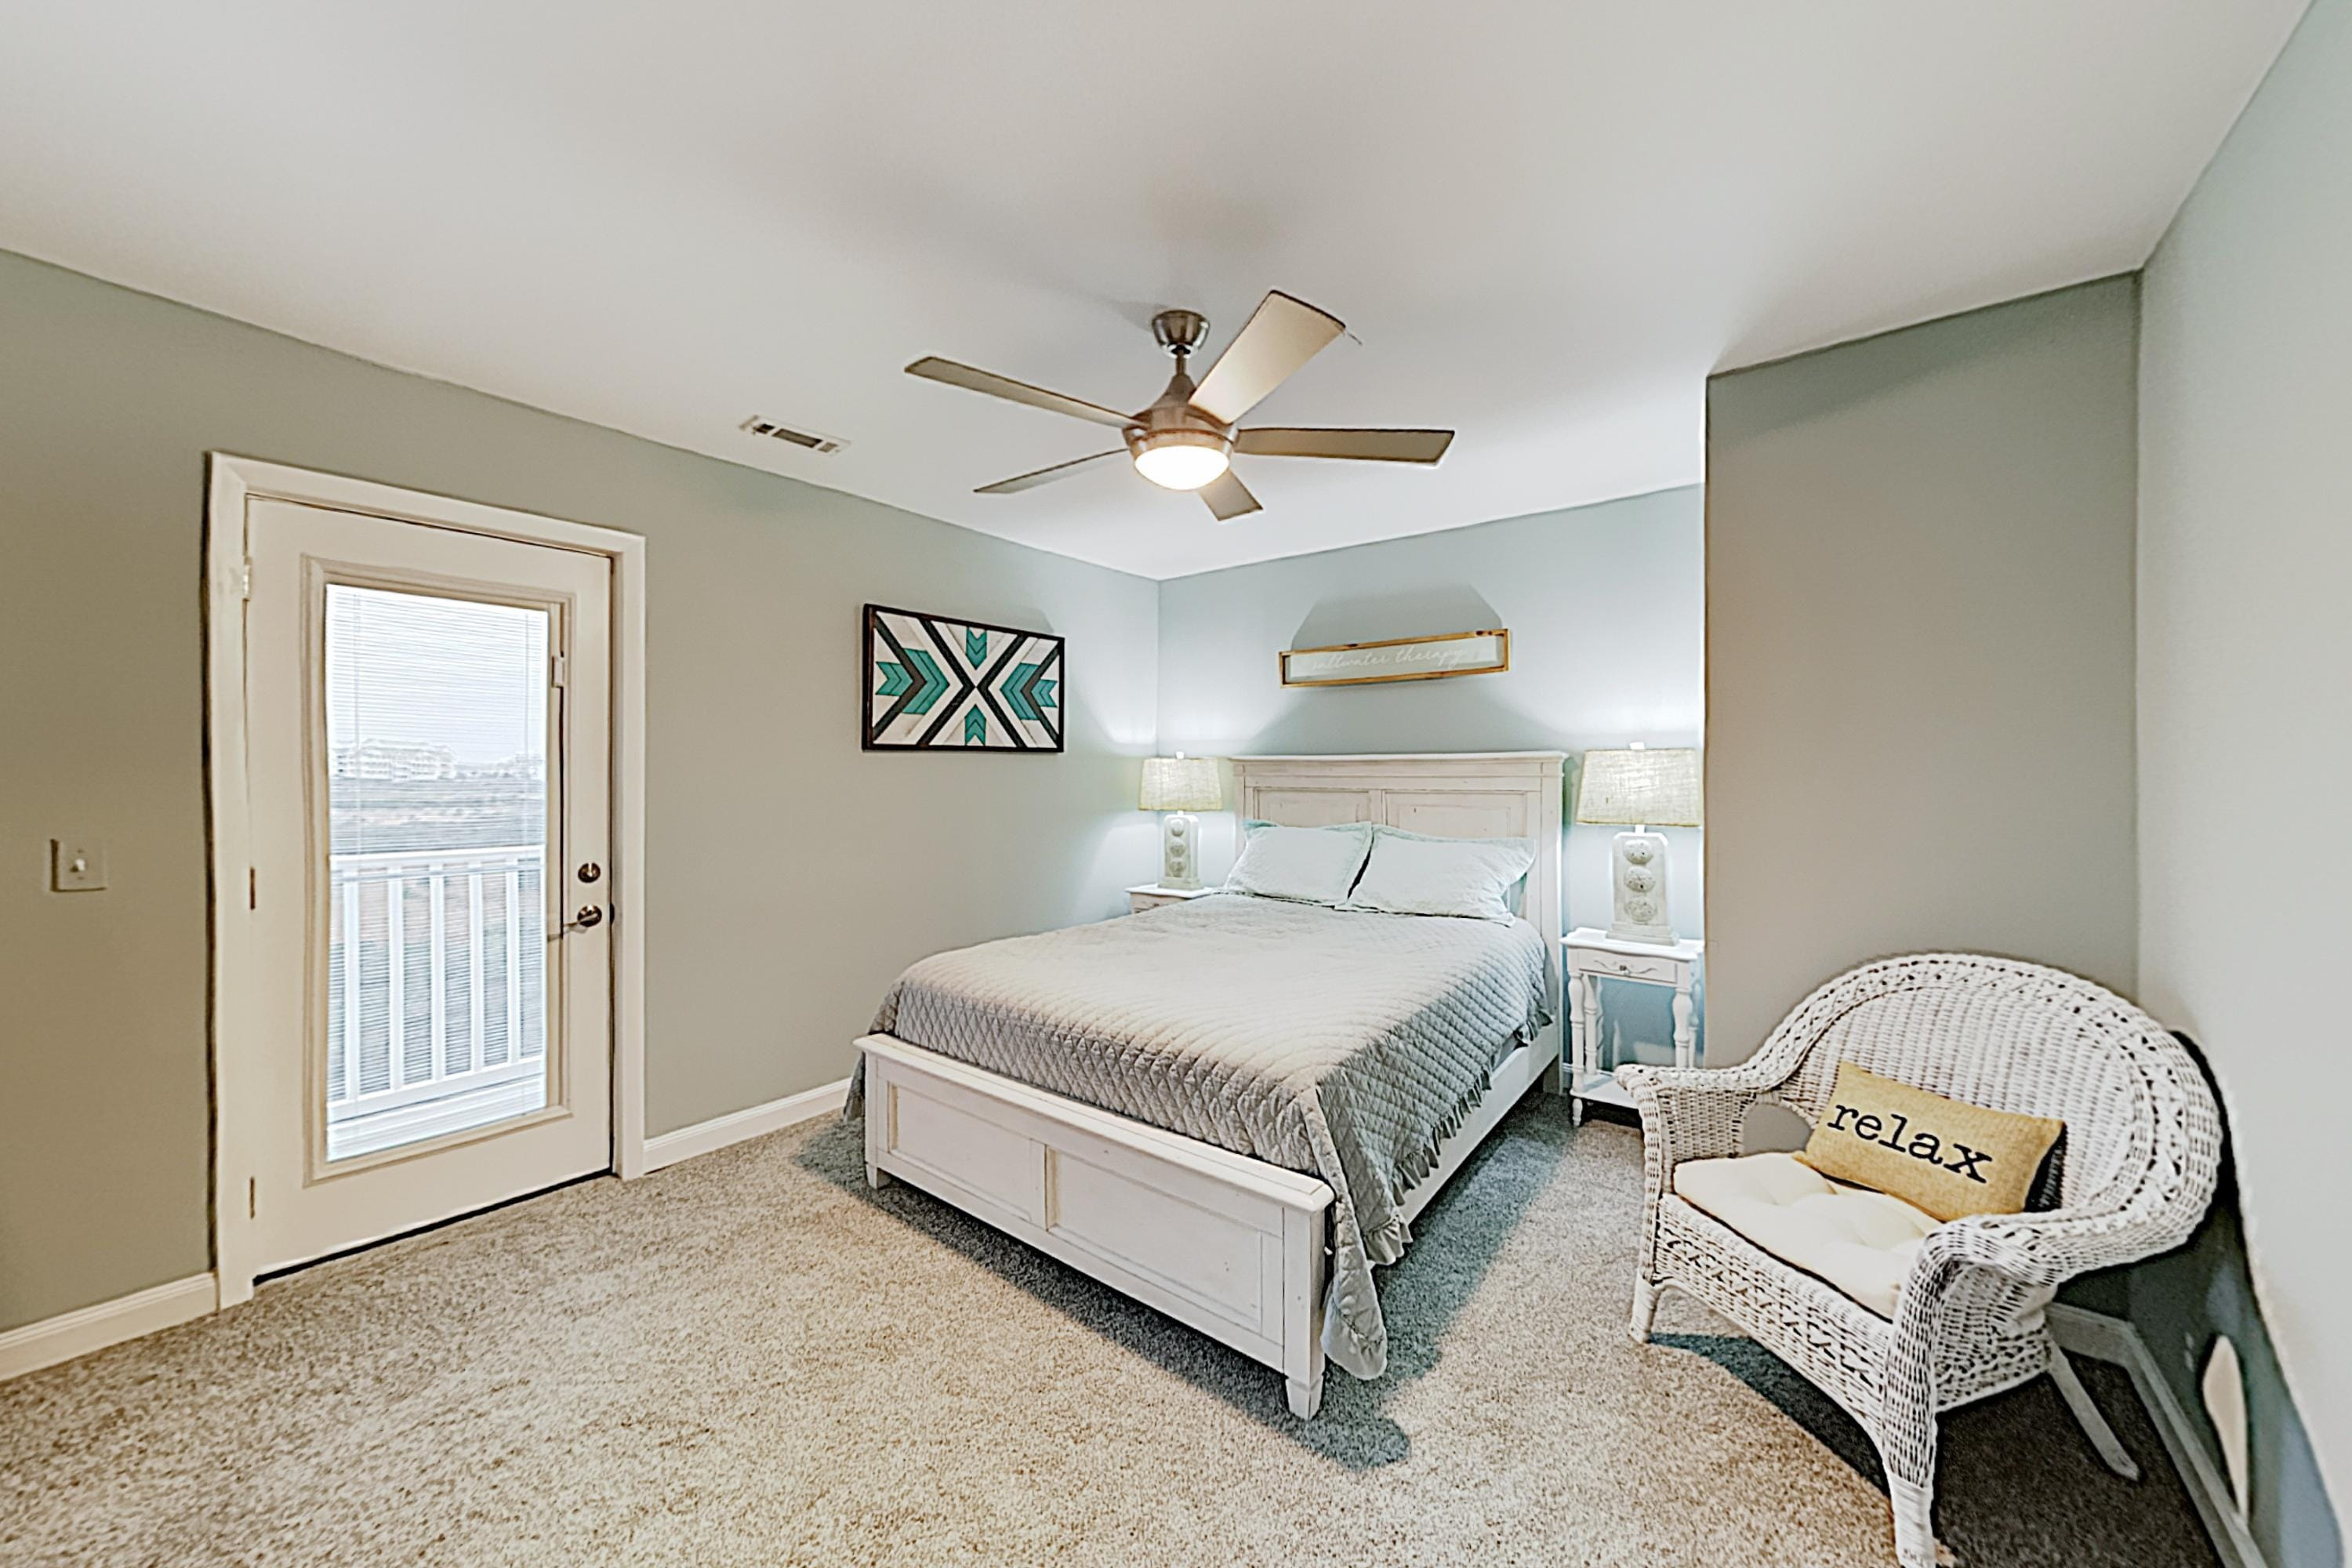 Sleep soundly in the master bedroom, furnished with a comfortable queen bed.